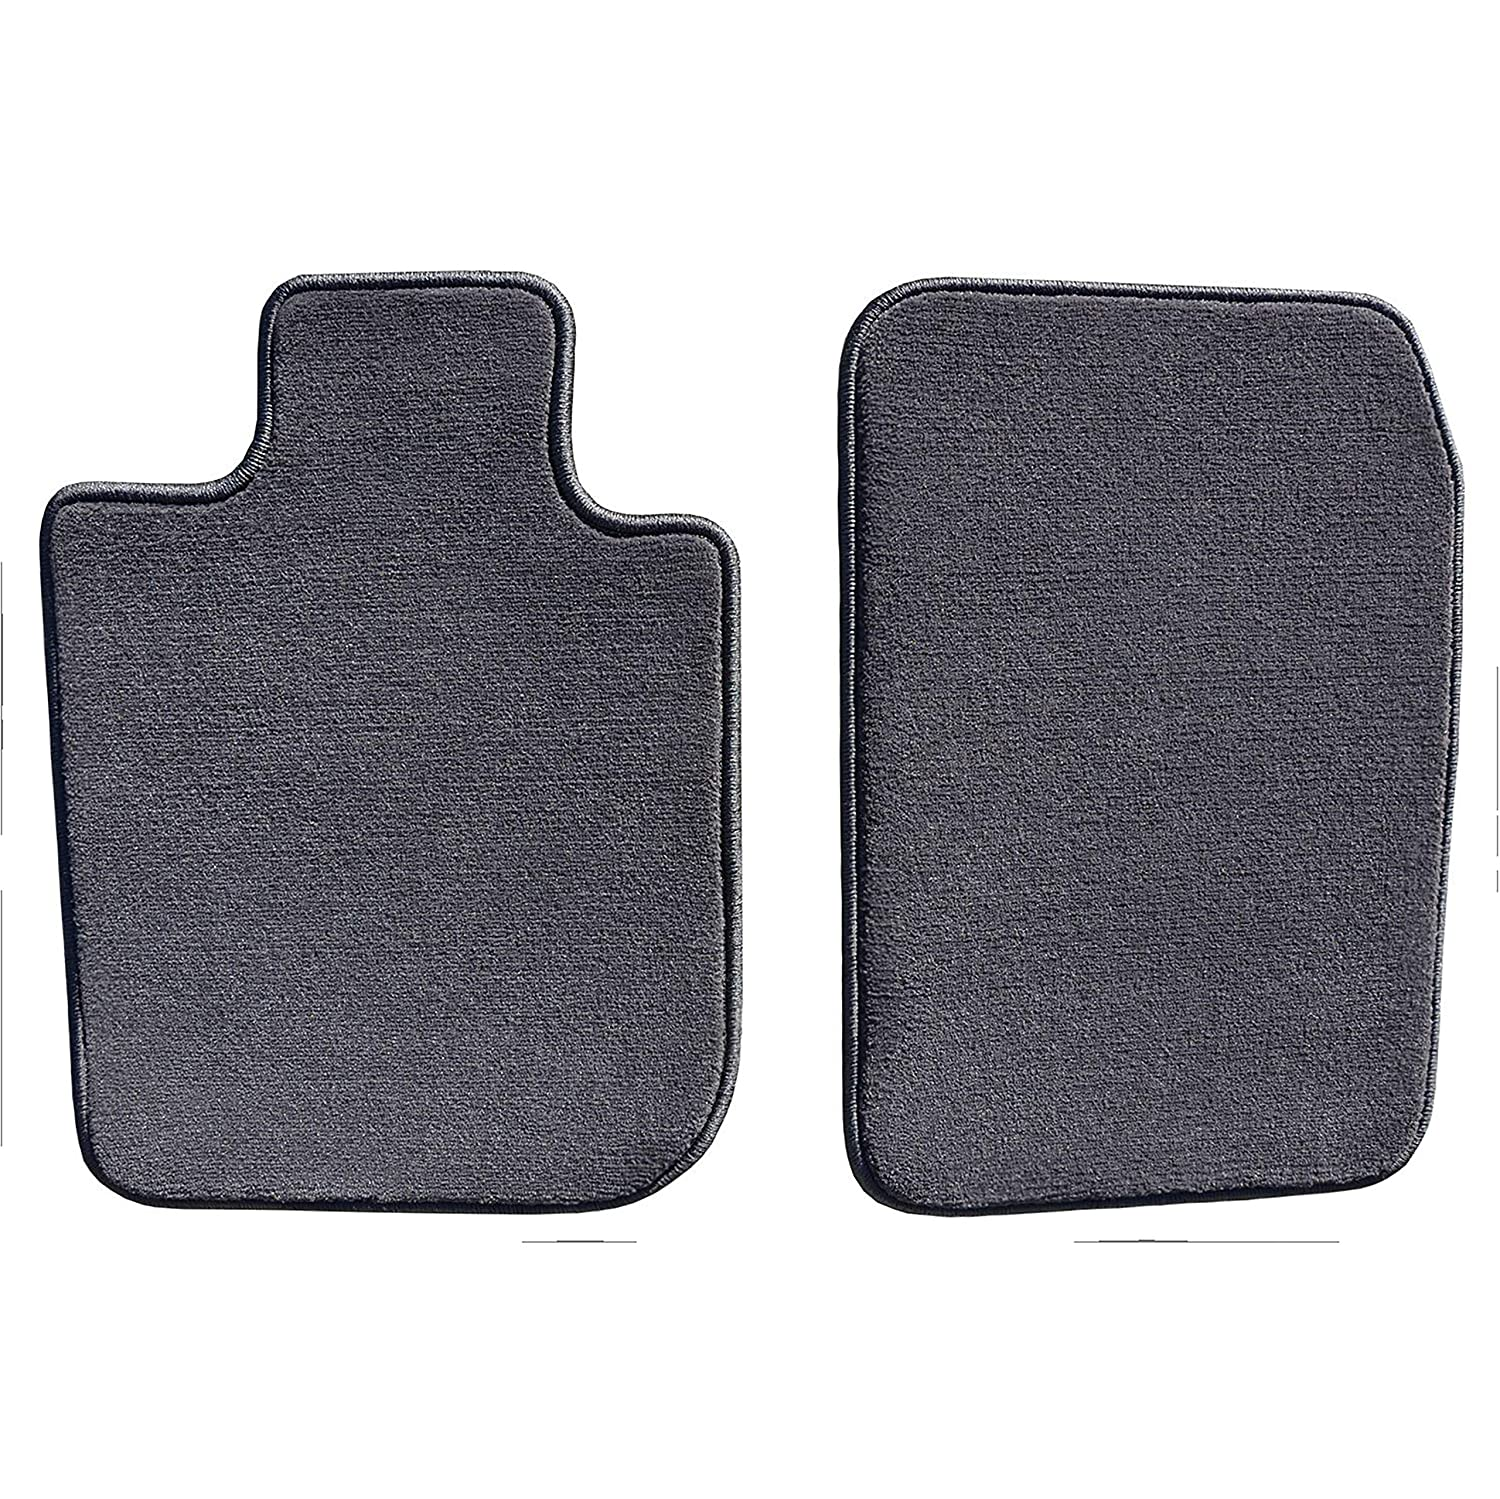 GGBAILEY D51525-F1A-CC-CHAR Courture Charcoal Front Set Custom Car Mats